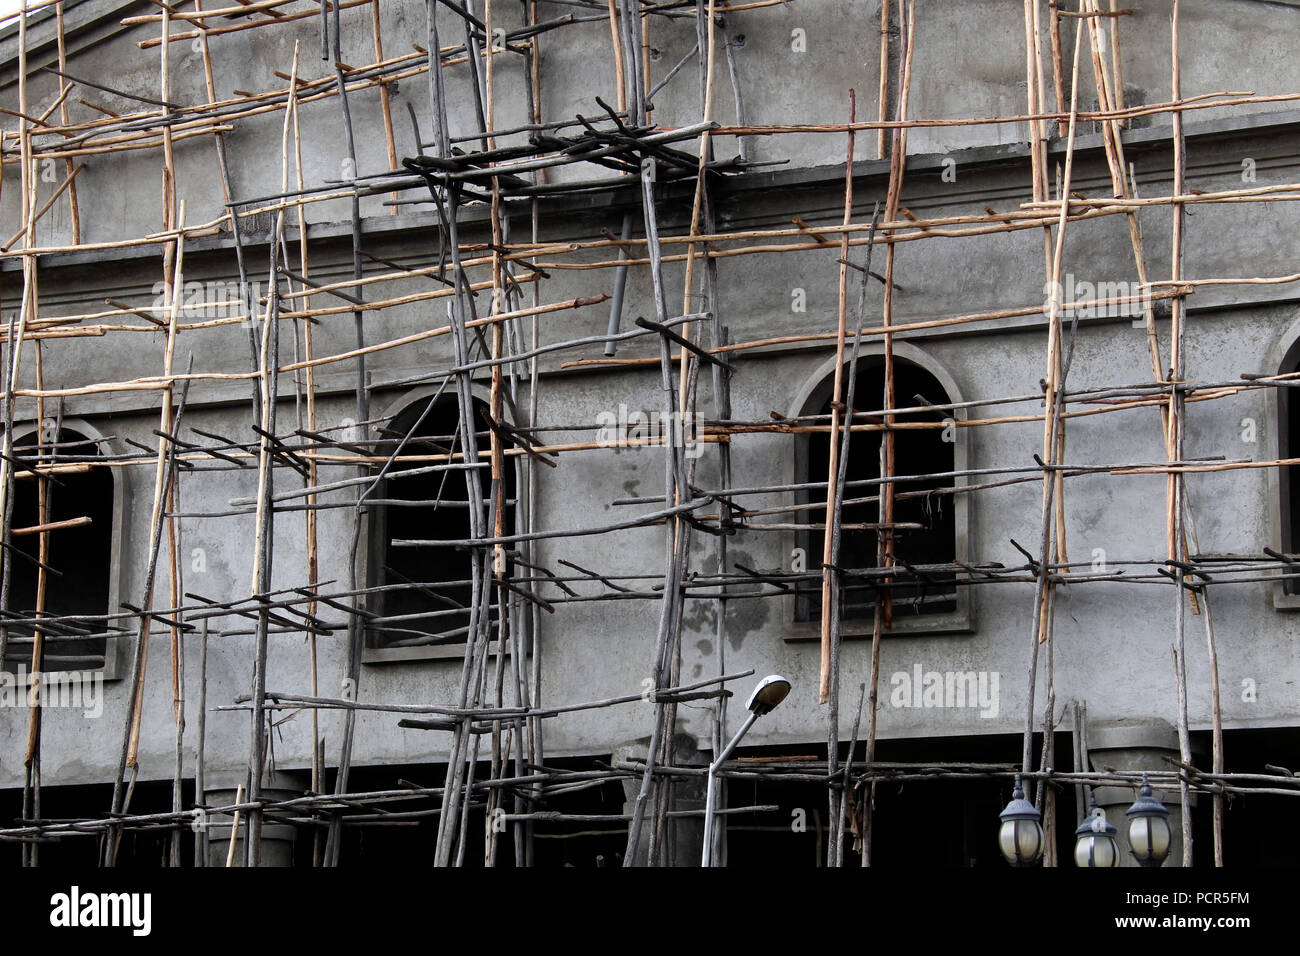 Wooden scaffolding on house wall, construction work, Addis Ababa, Ethiopia - Stock Image